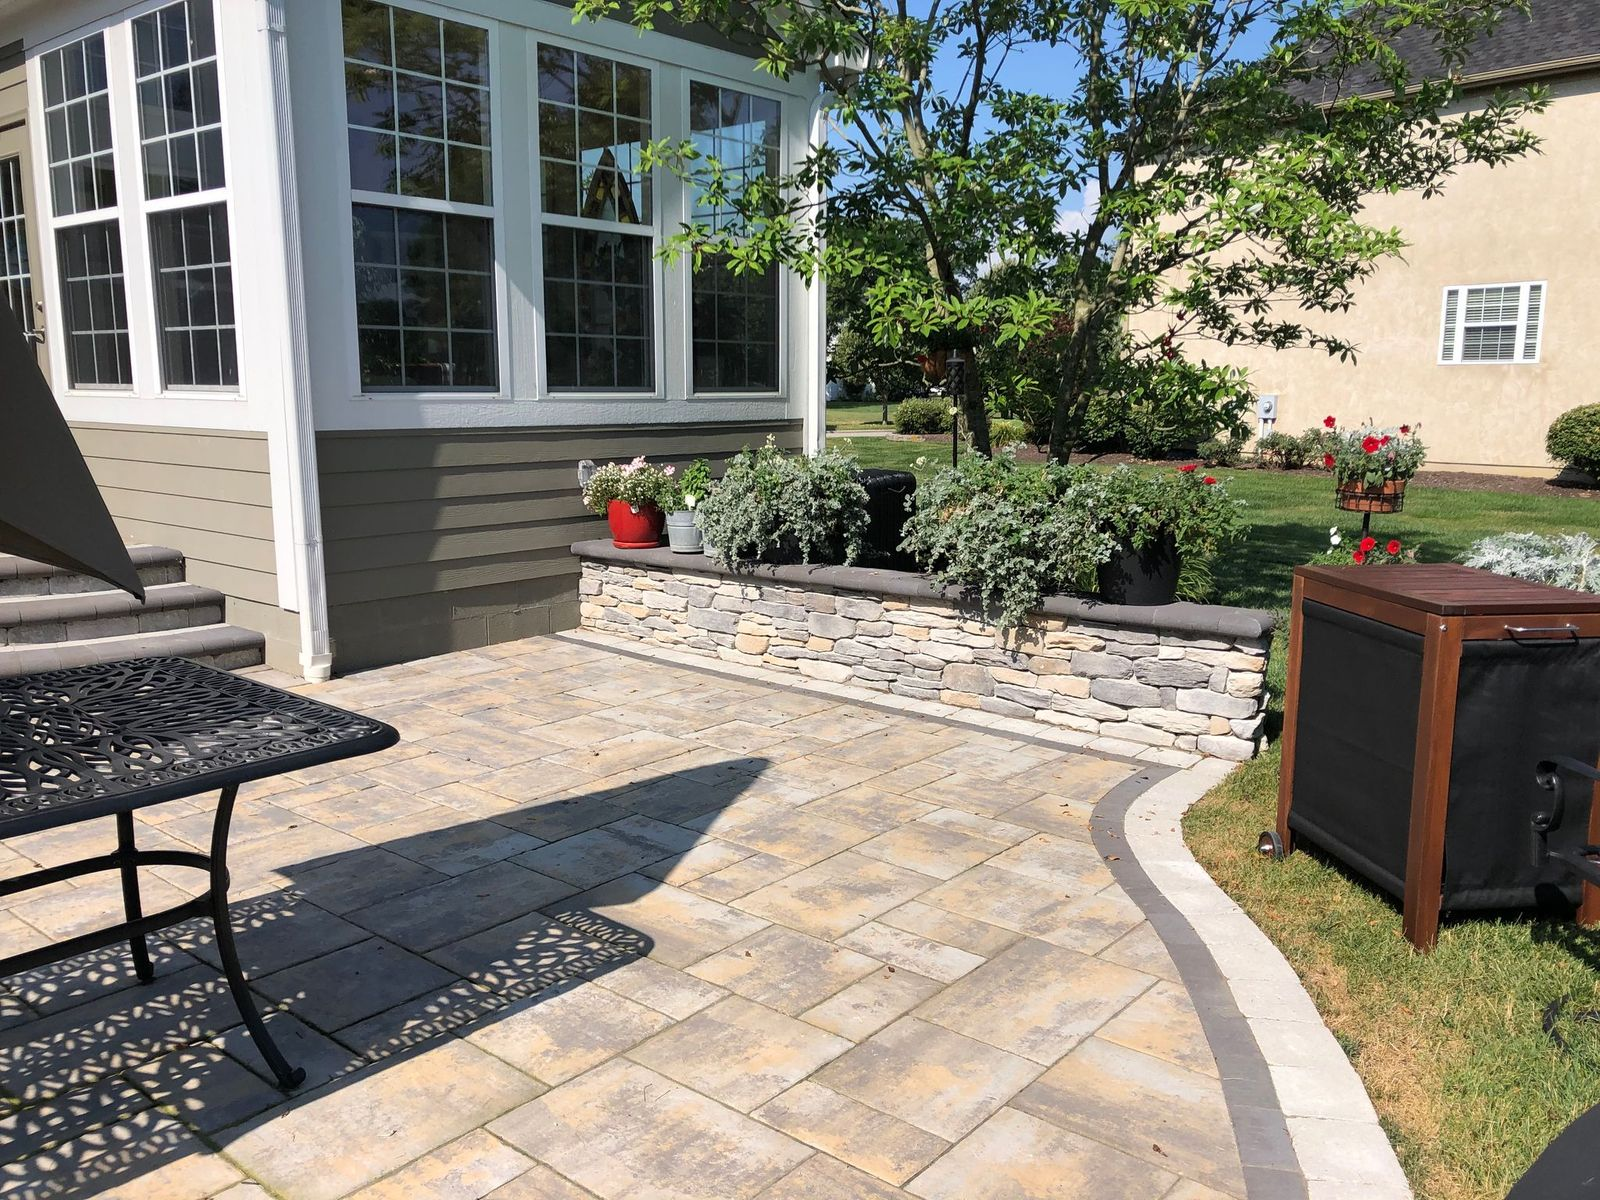 We-used-a-double-border-on-the-patio's-edge